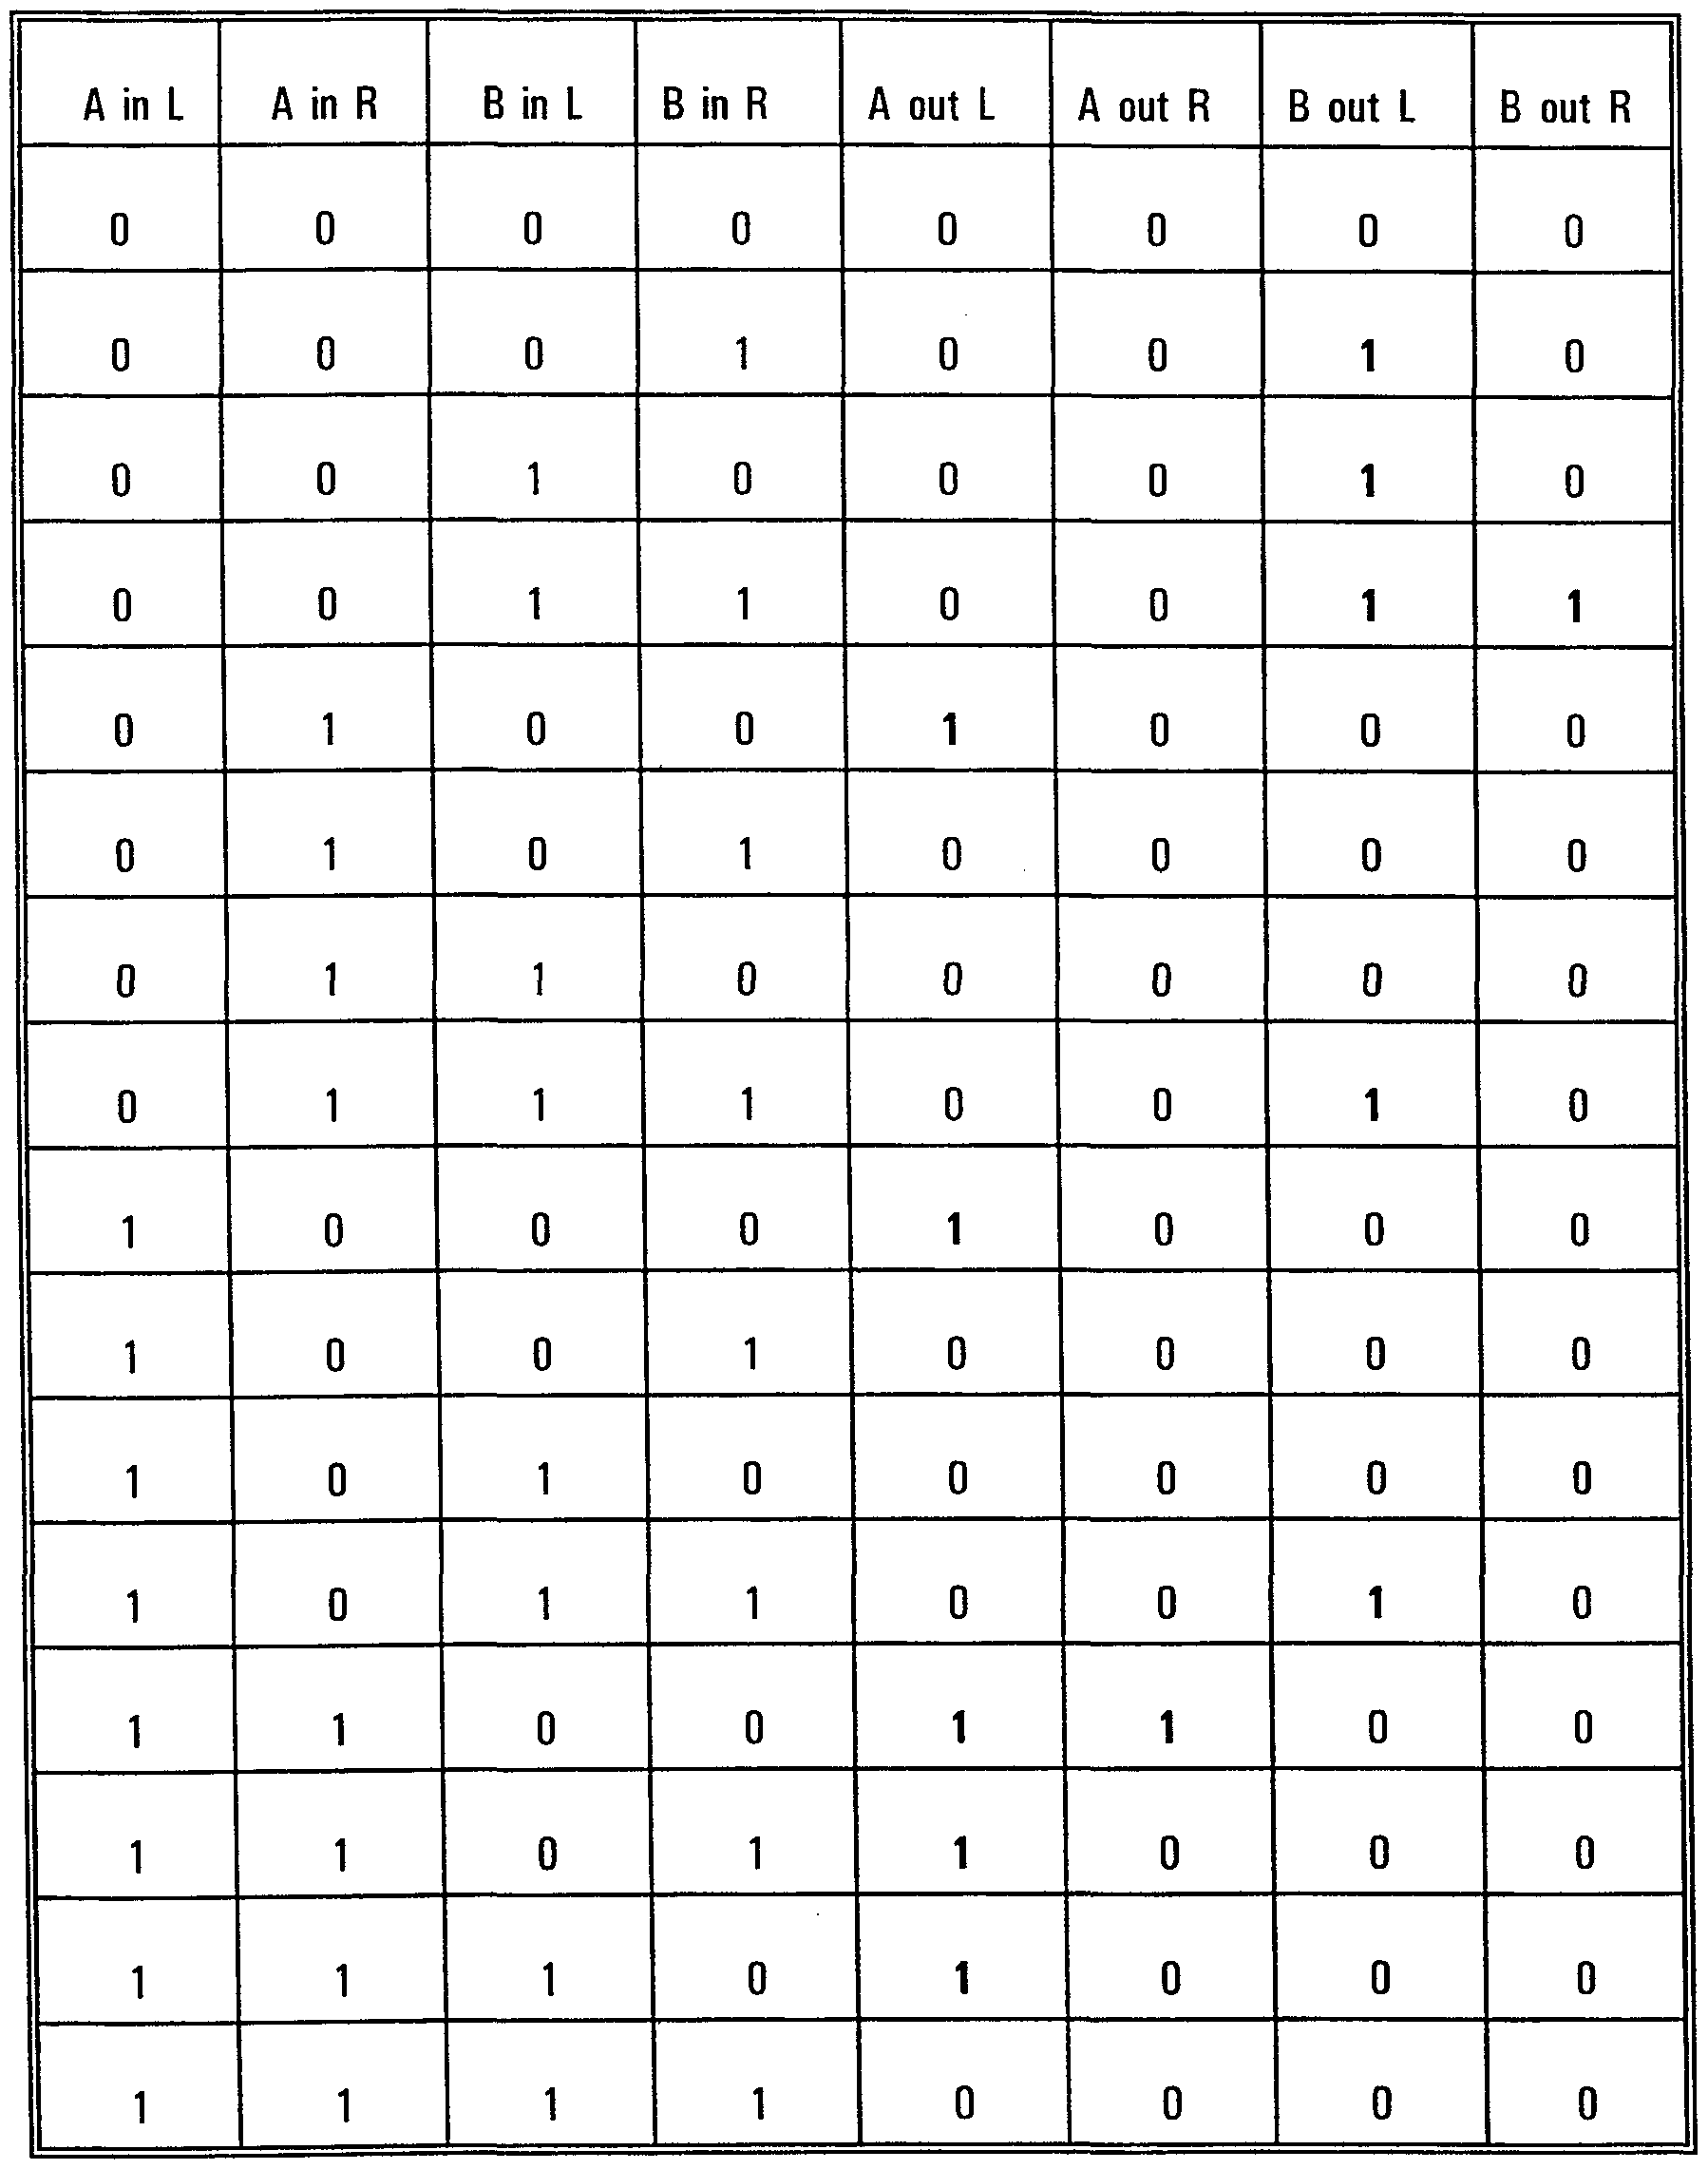 Arithmetic logic unit truth table more information djekova figure imgf000010 0001 arithmetic logic unit truth table biocorpaavc